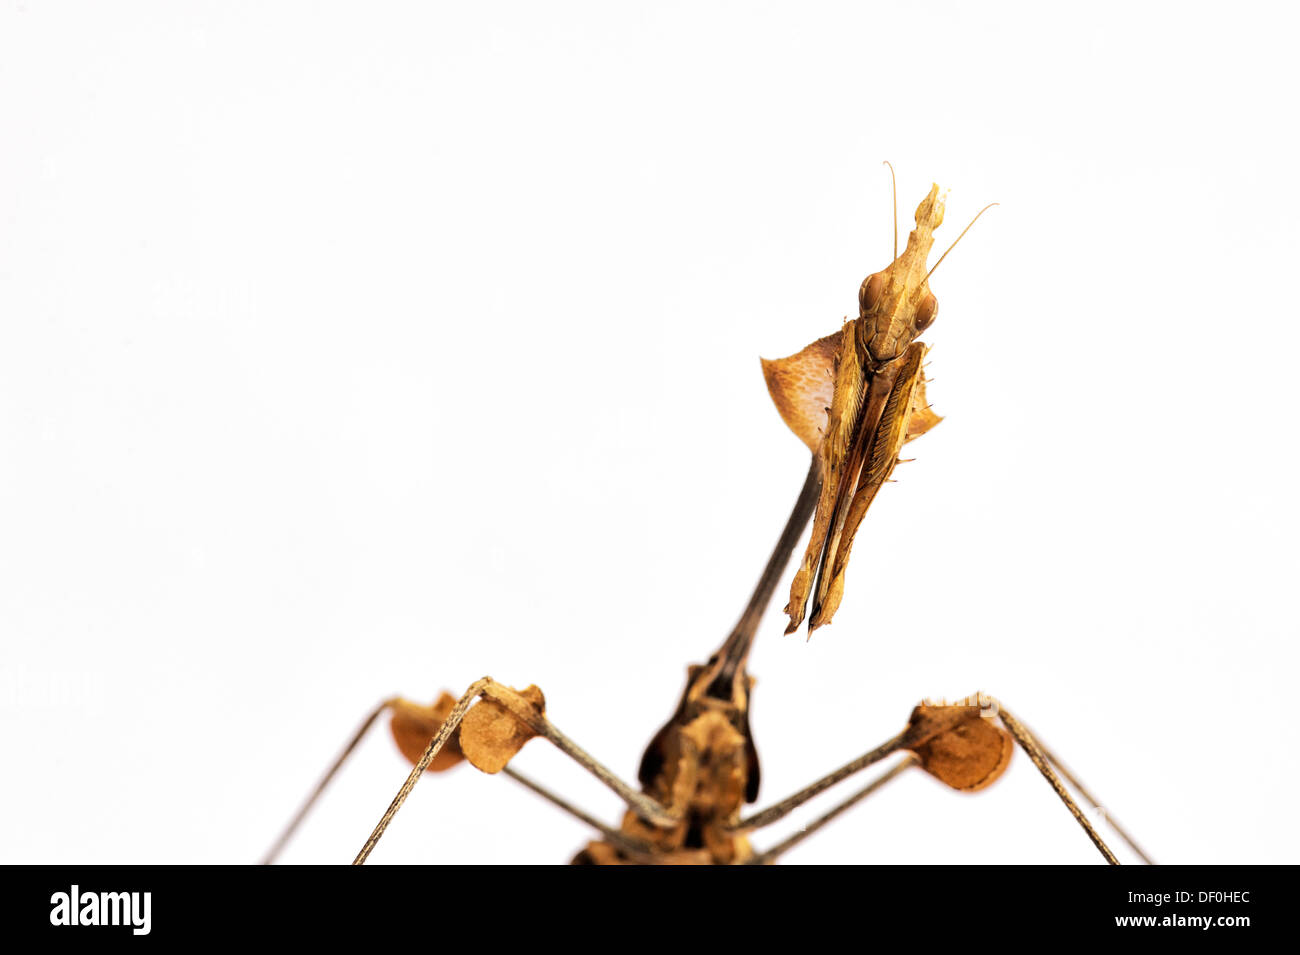 Gongylus gongyloides. Violon errance mante religieuse. Mantis ouvragée. Mantis rose indien Photo Stock